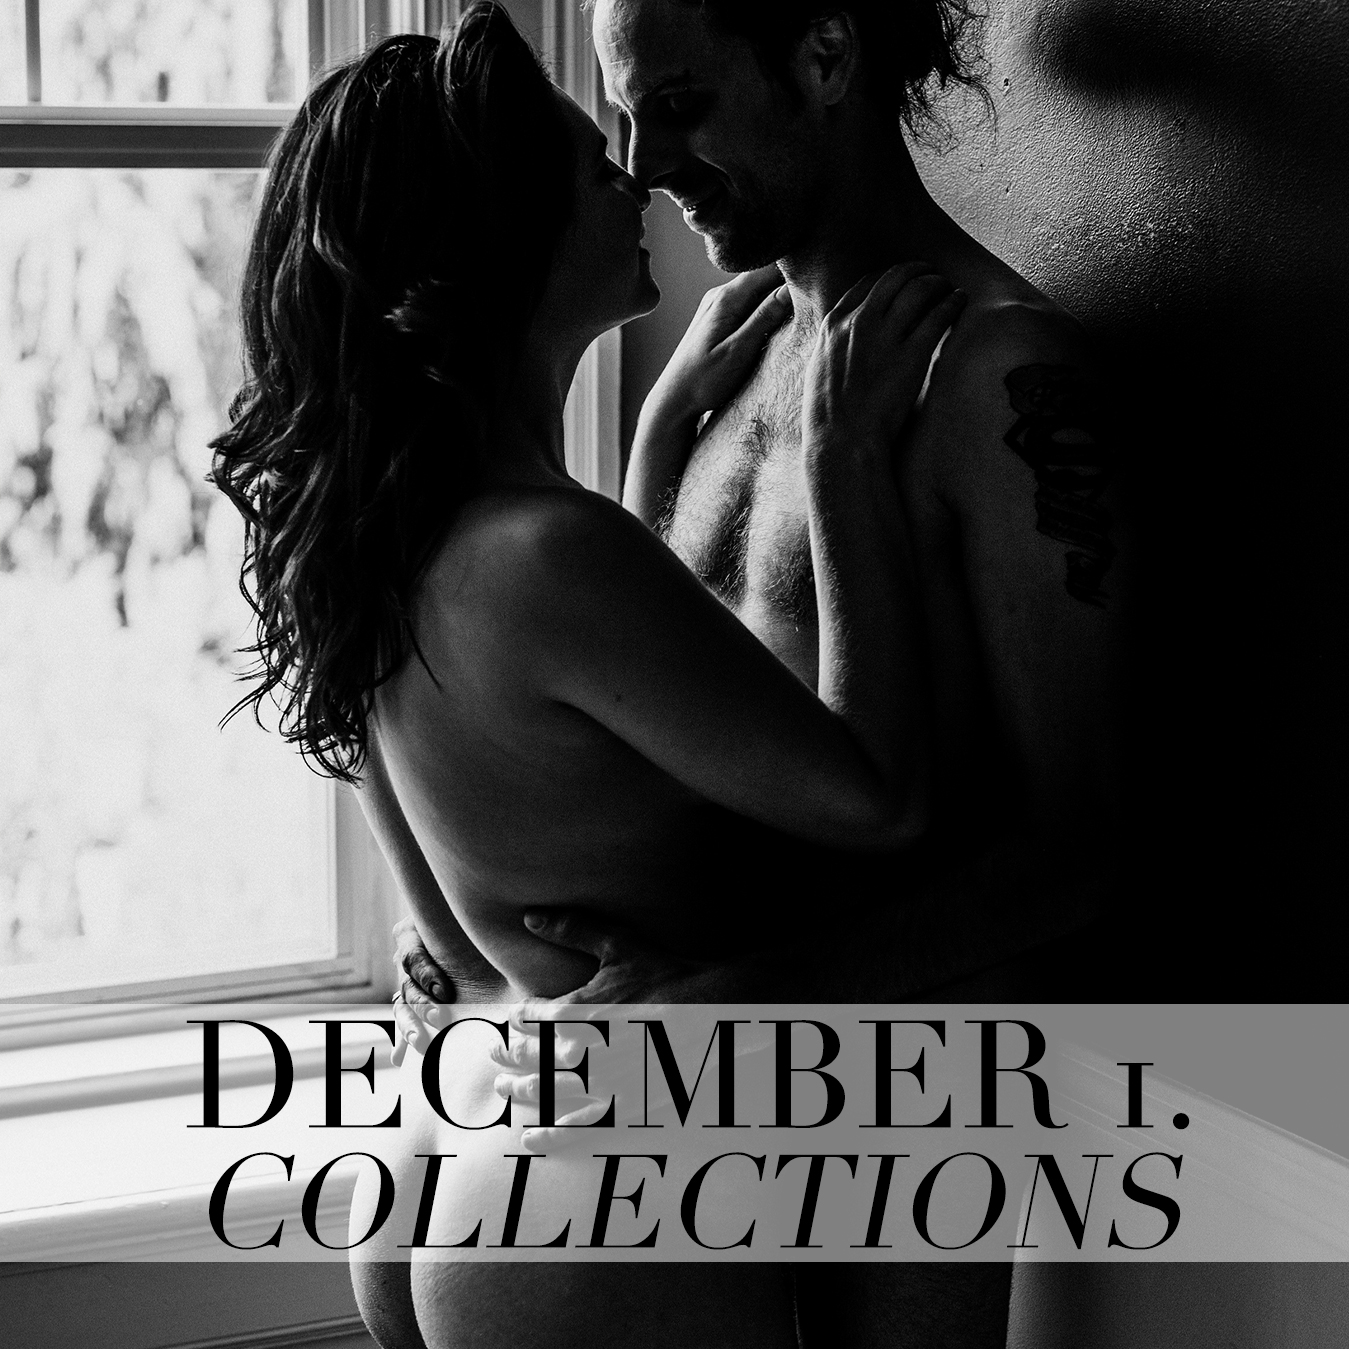 Dcember-1-collections.jpg